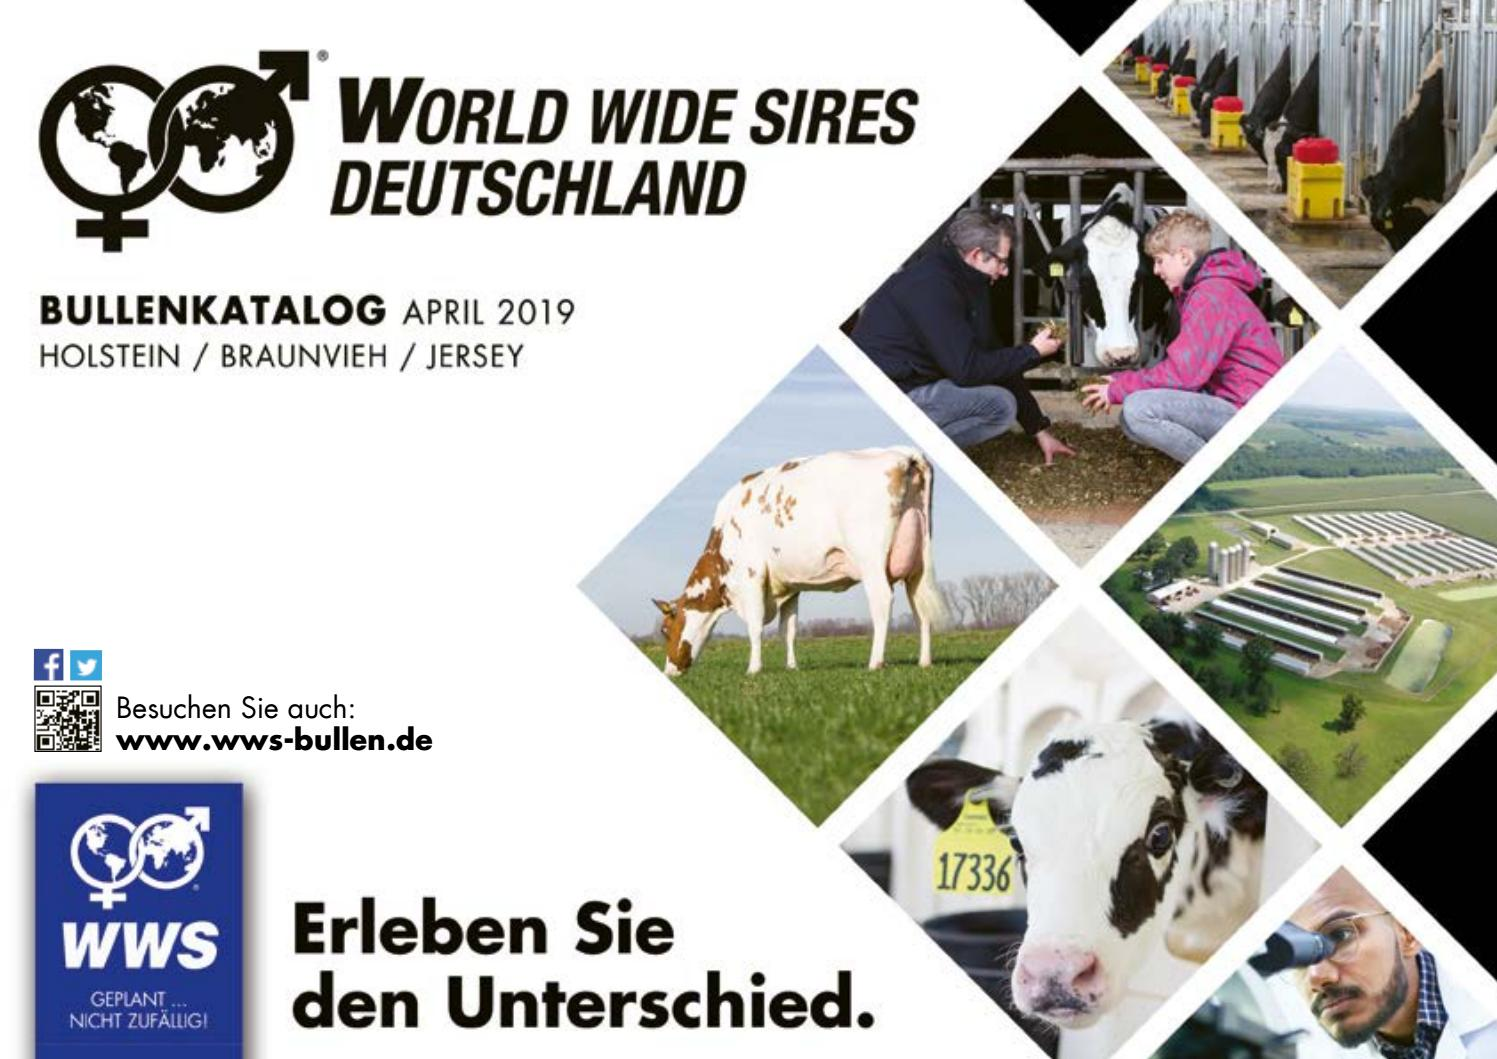 Bullenkatalog April 2019 By World Wide Sires Deutschland Gmbh Issuu